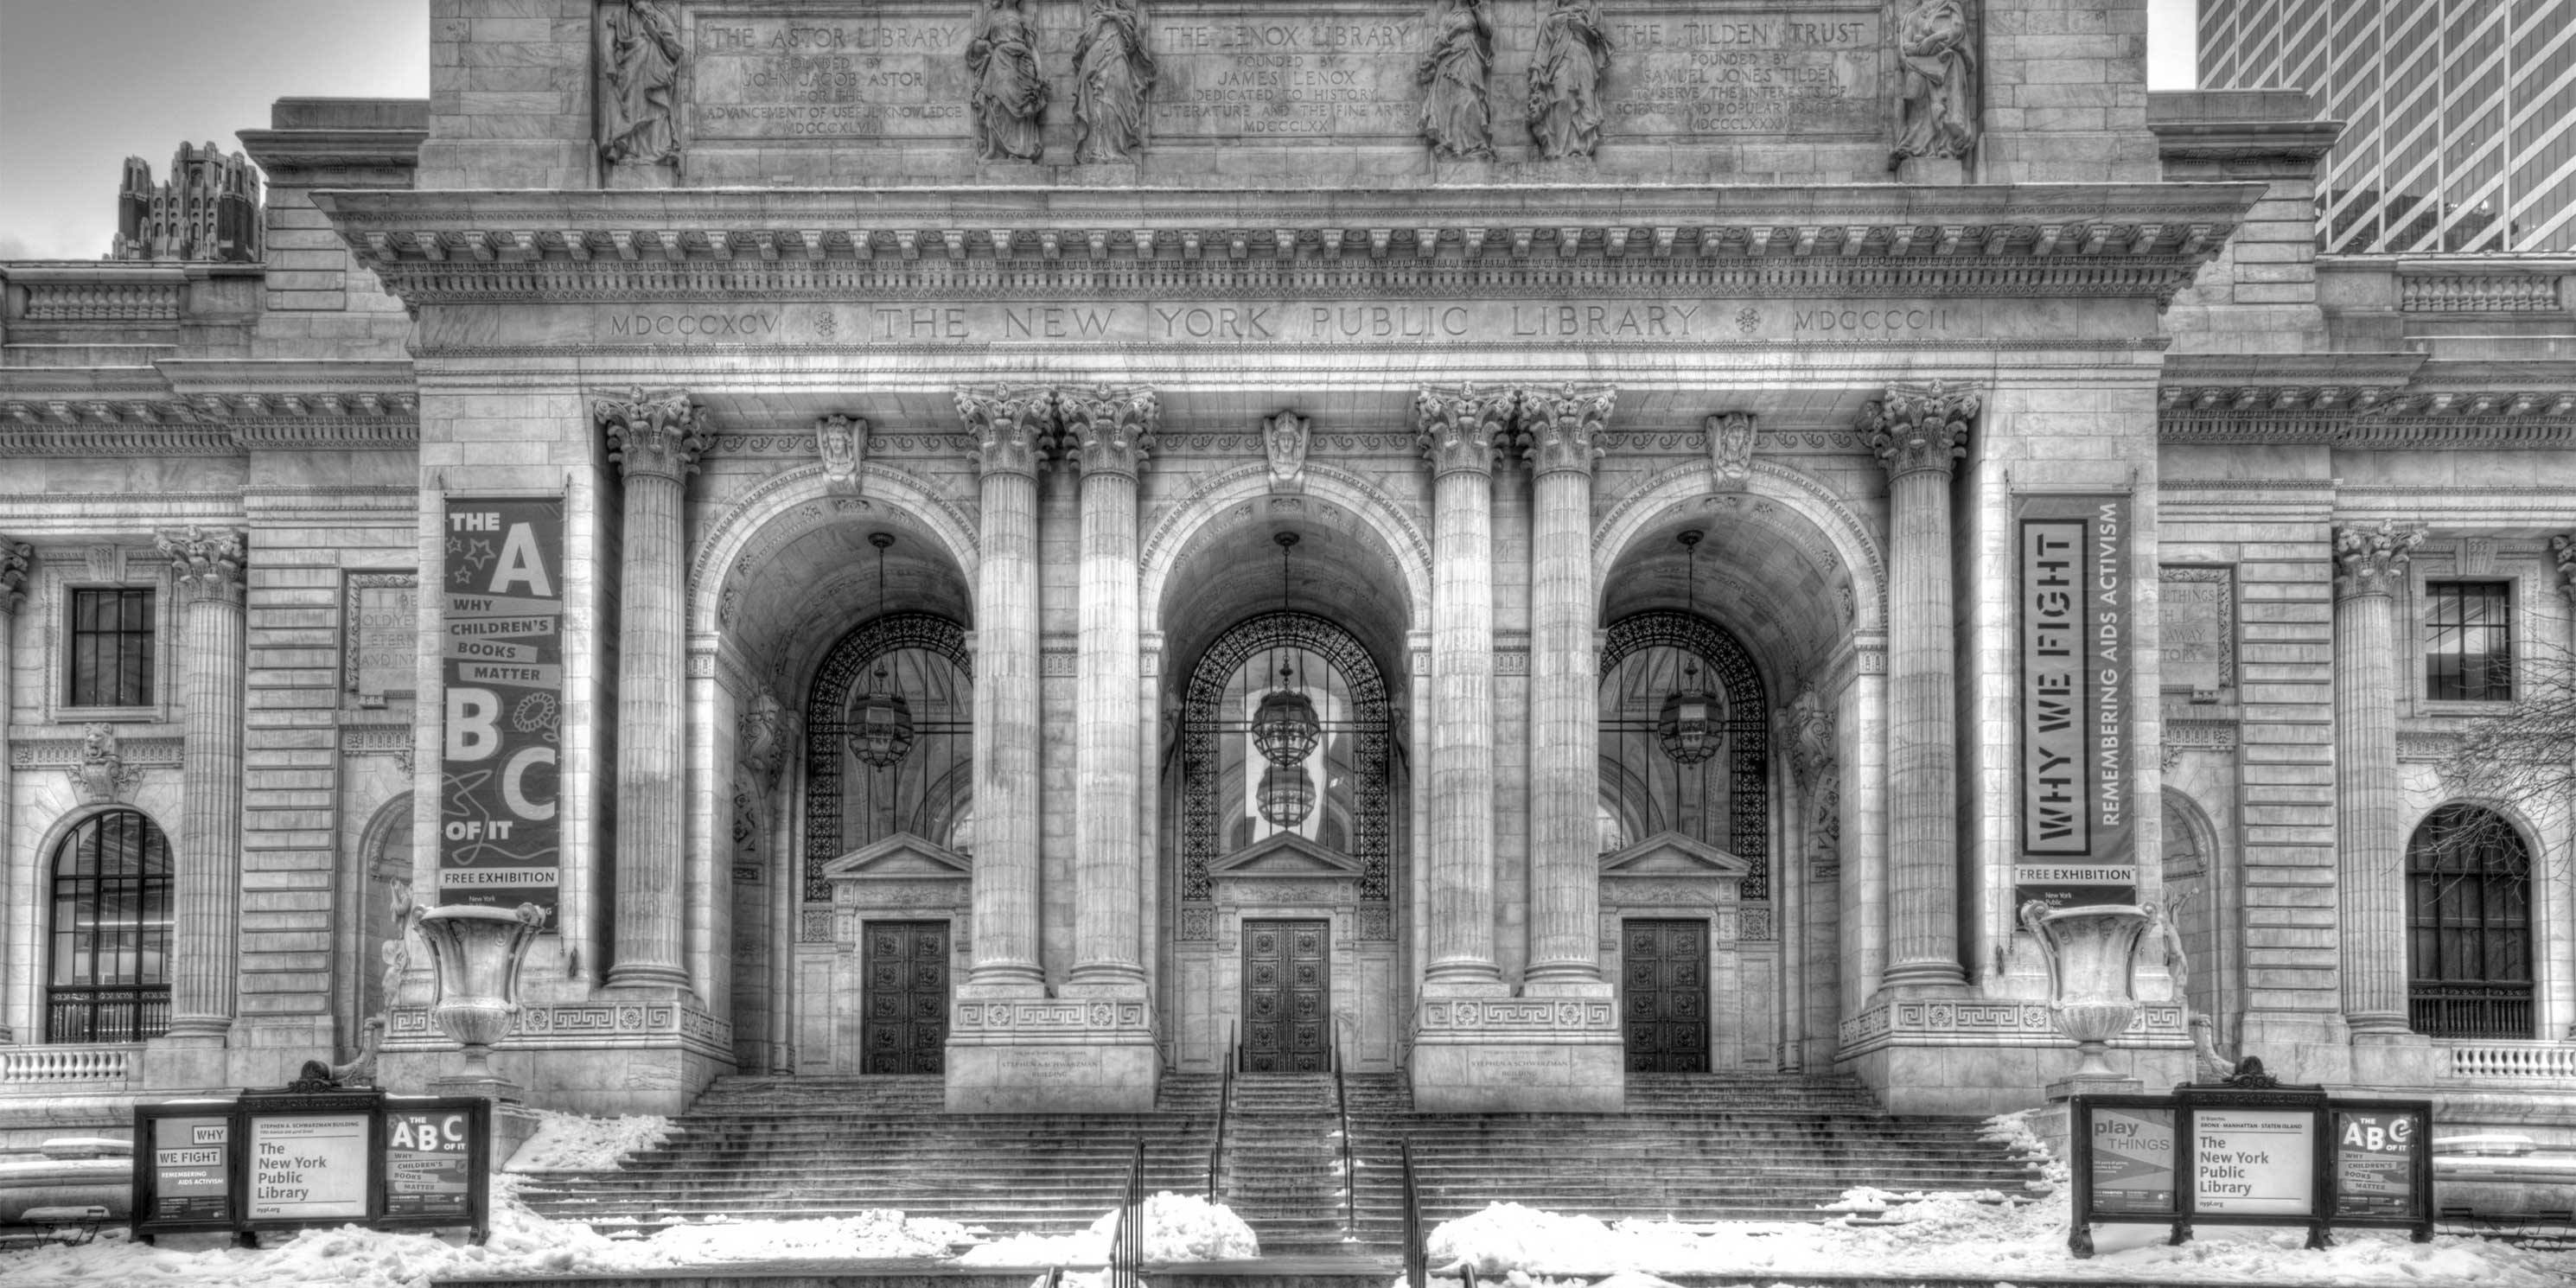 The Stephen A. Schwarzman Building of the New York Public Library. Photo: Wikimedia Commons, Bestbudbrian.